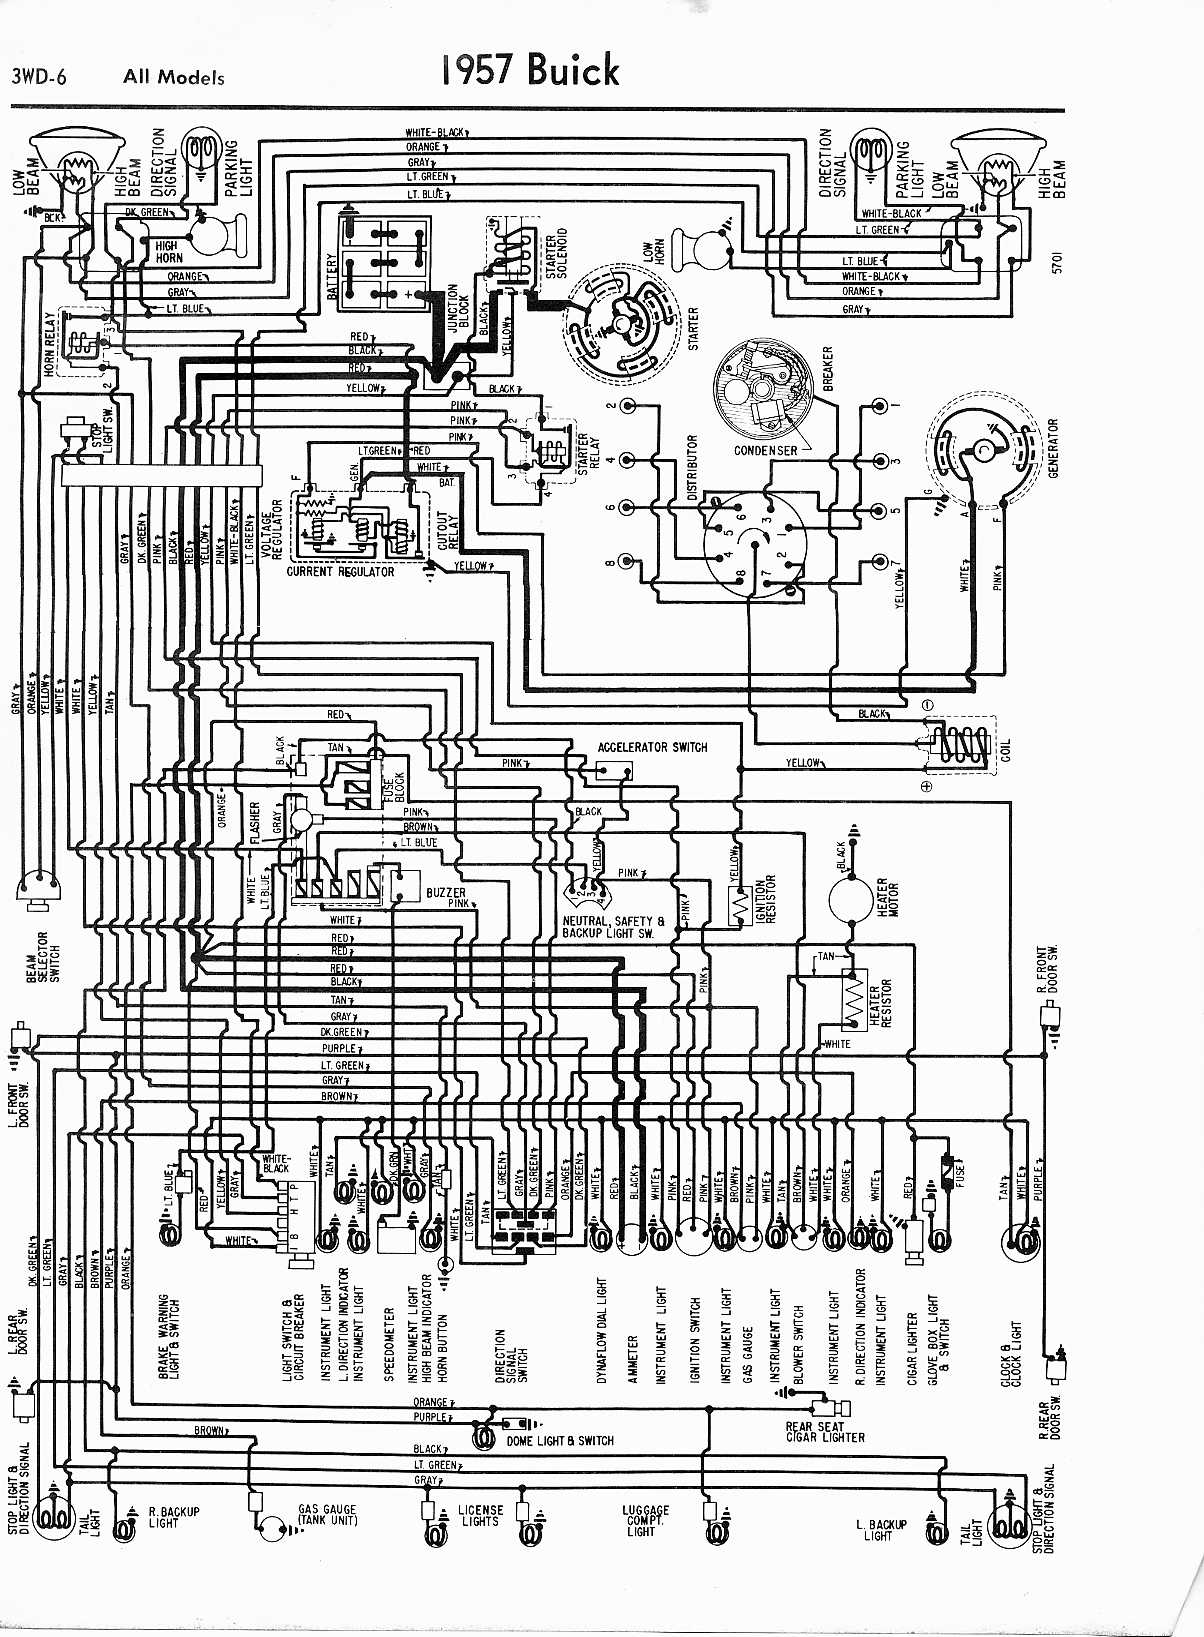 MWireBuic65_3WD 006 1965 buick riviera wiring diagram 1967 wiring diagram simonand 1957 buick special fuse box location at gsmx.co